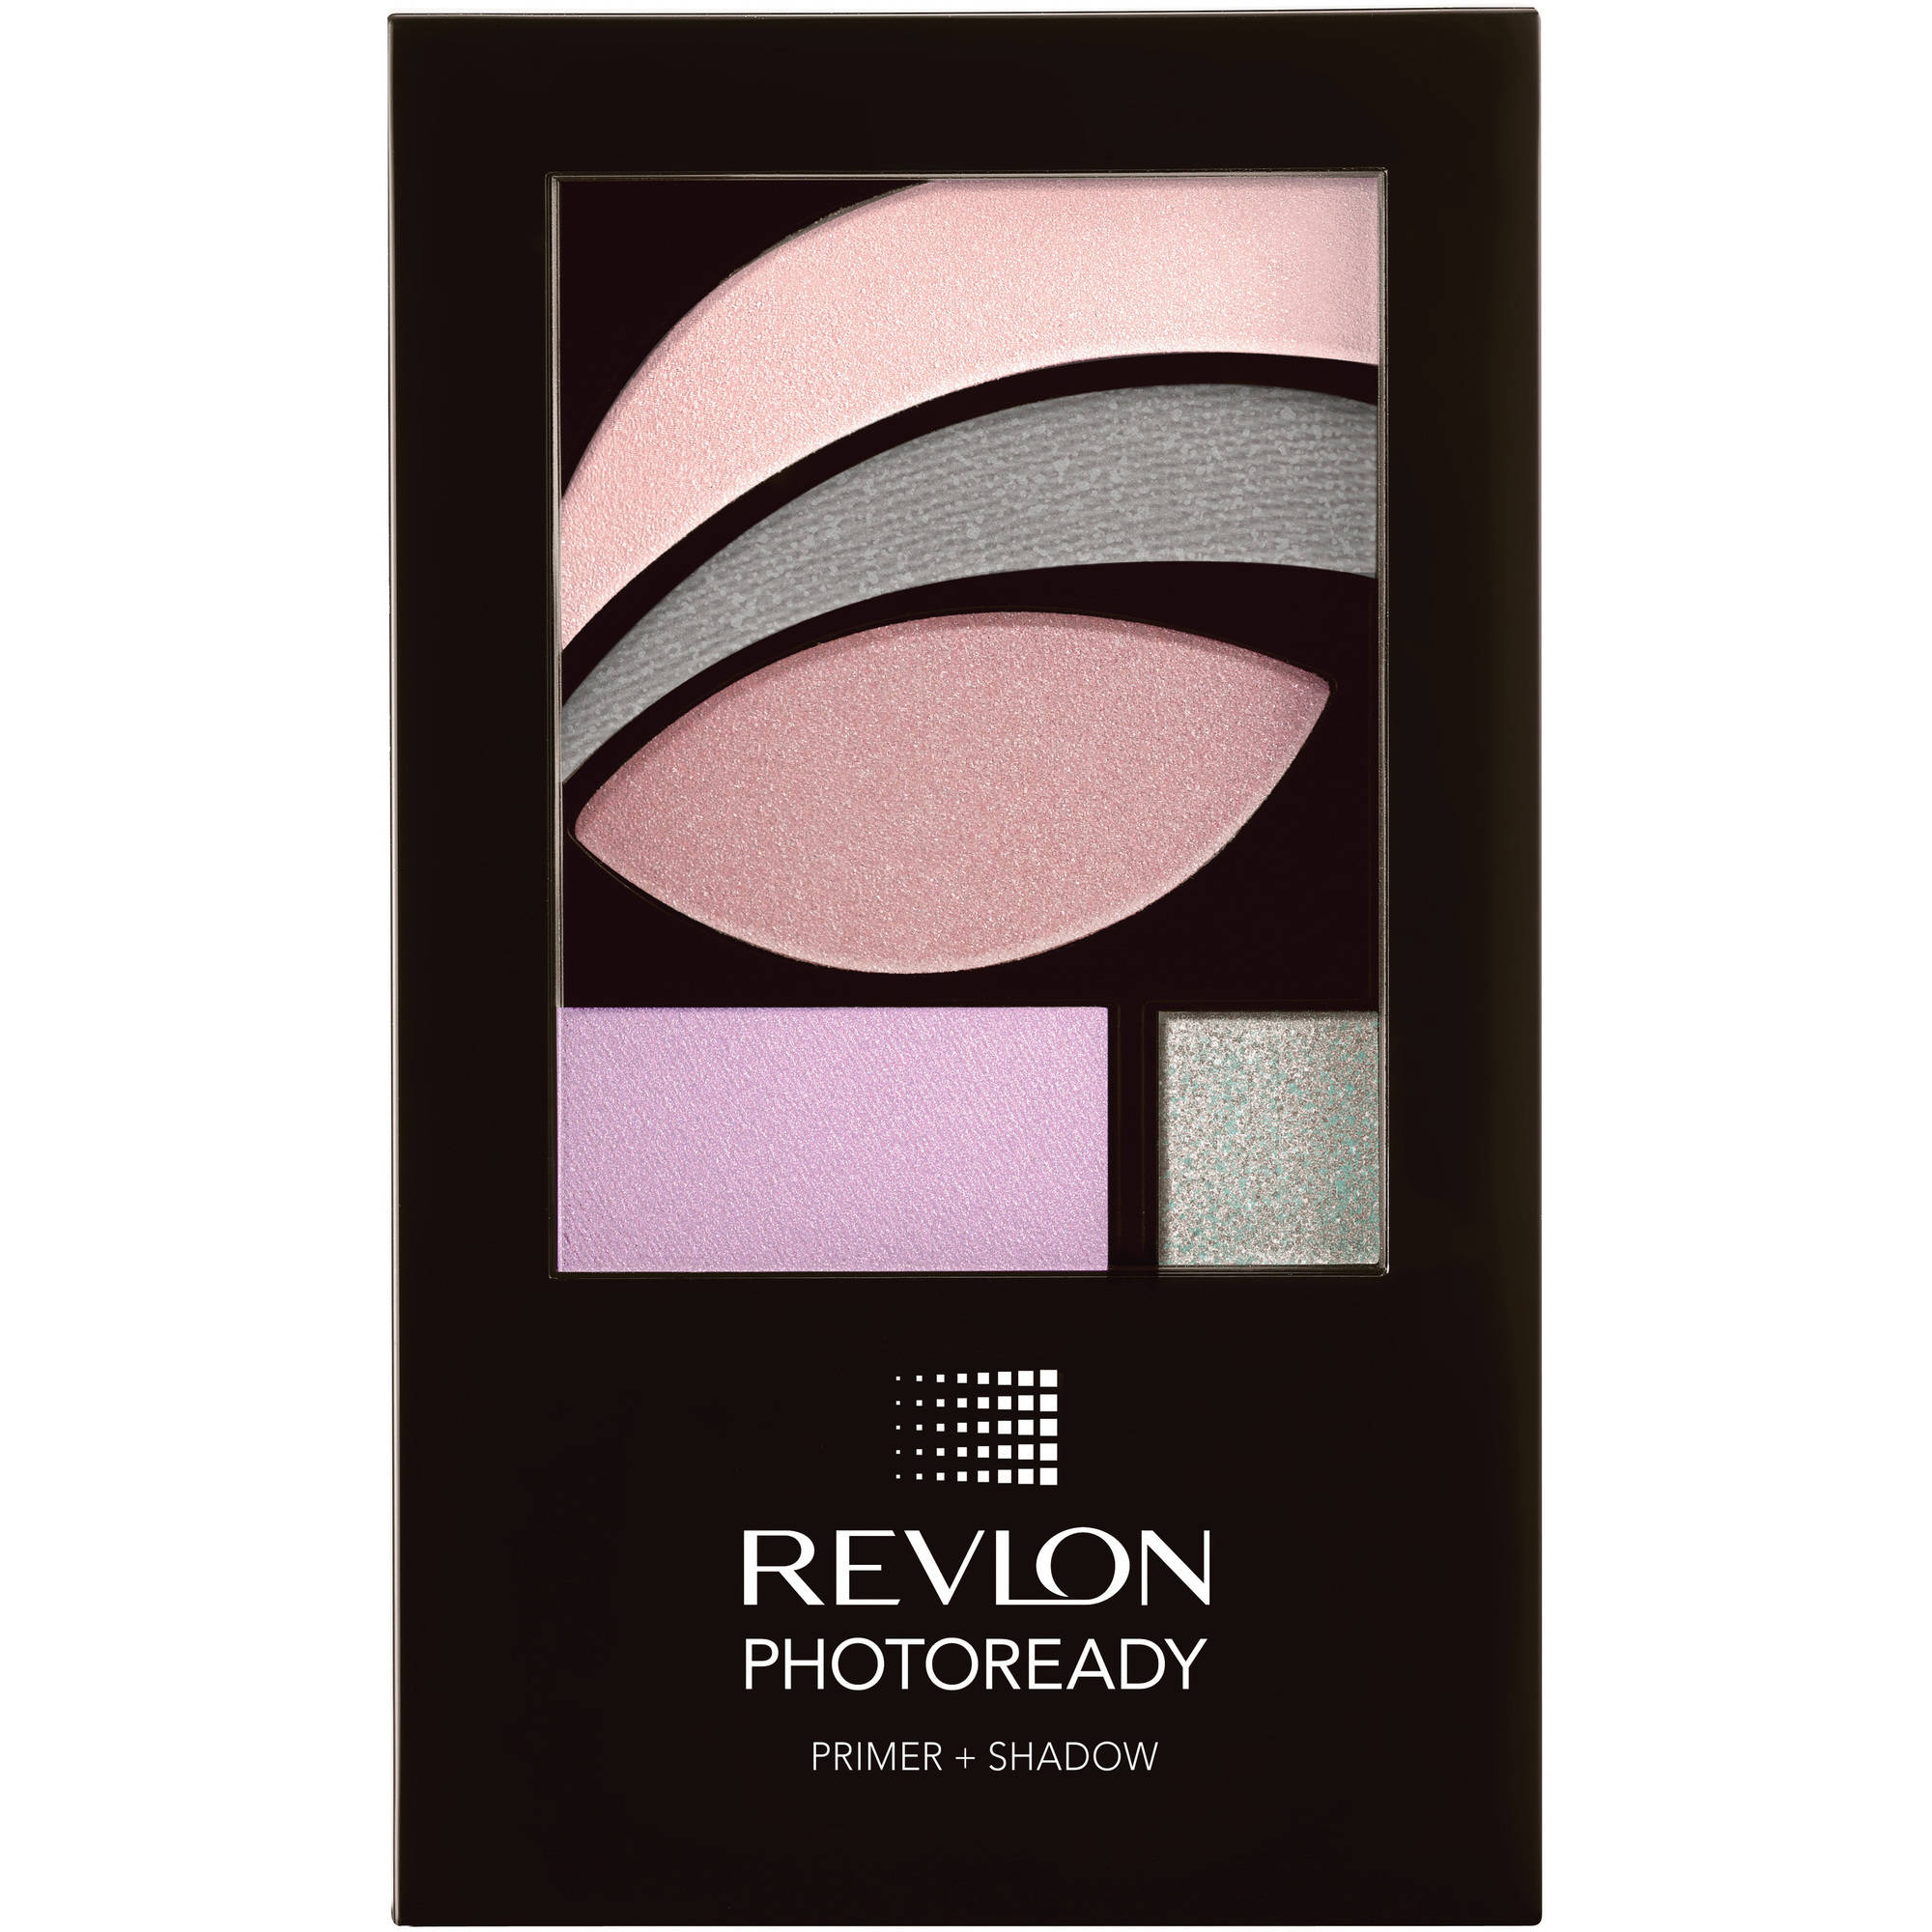 Revlon PhotoReady Primer, Shadow + Sparkle Eyeshadow, Romanticism, .1 Oz